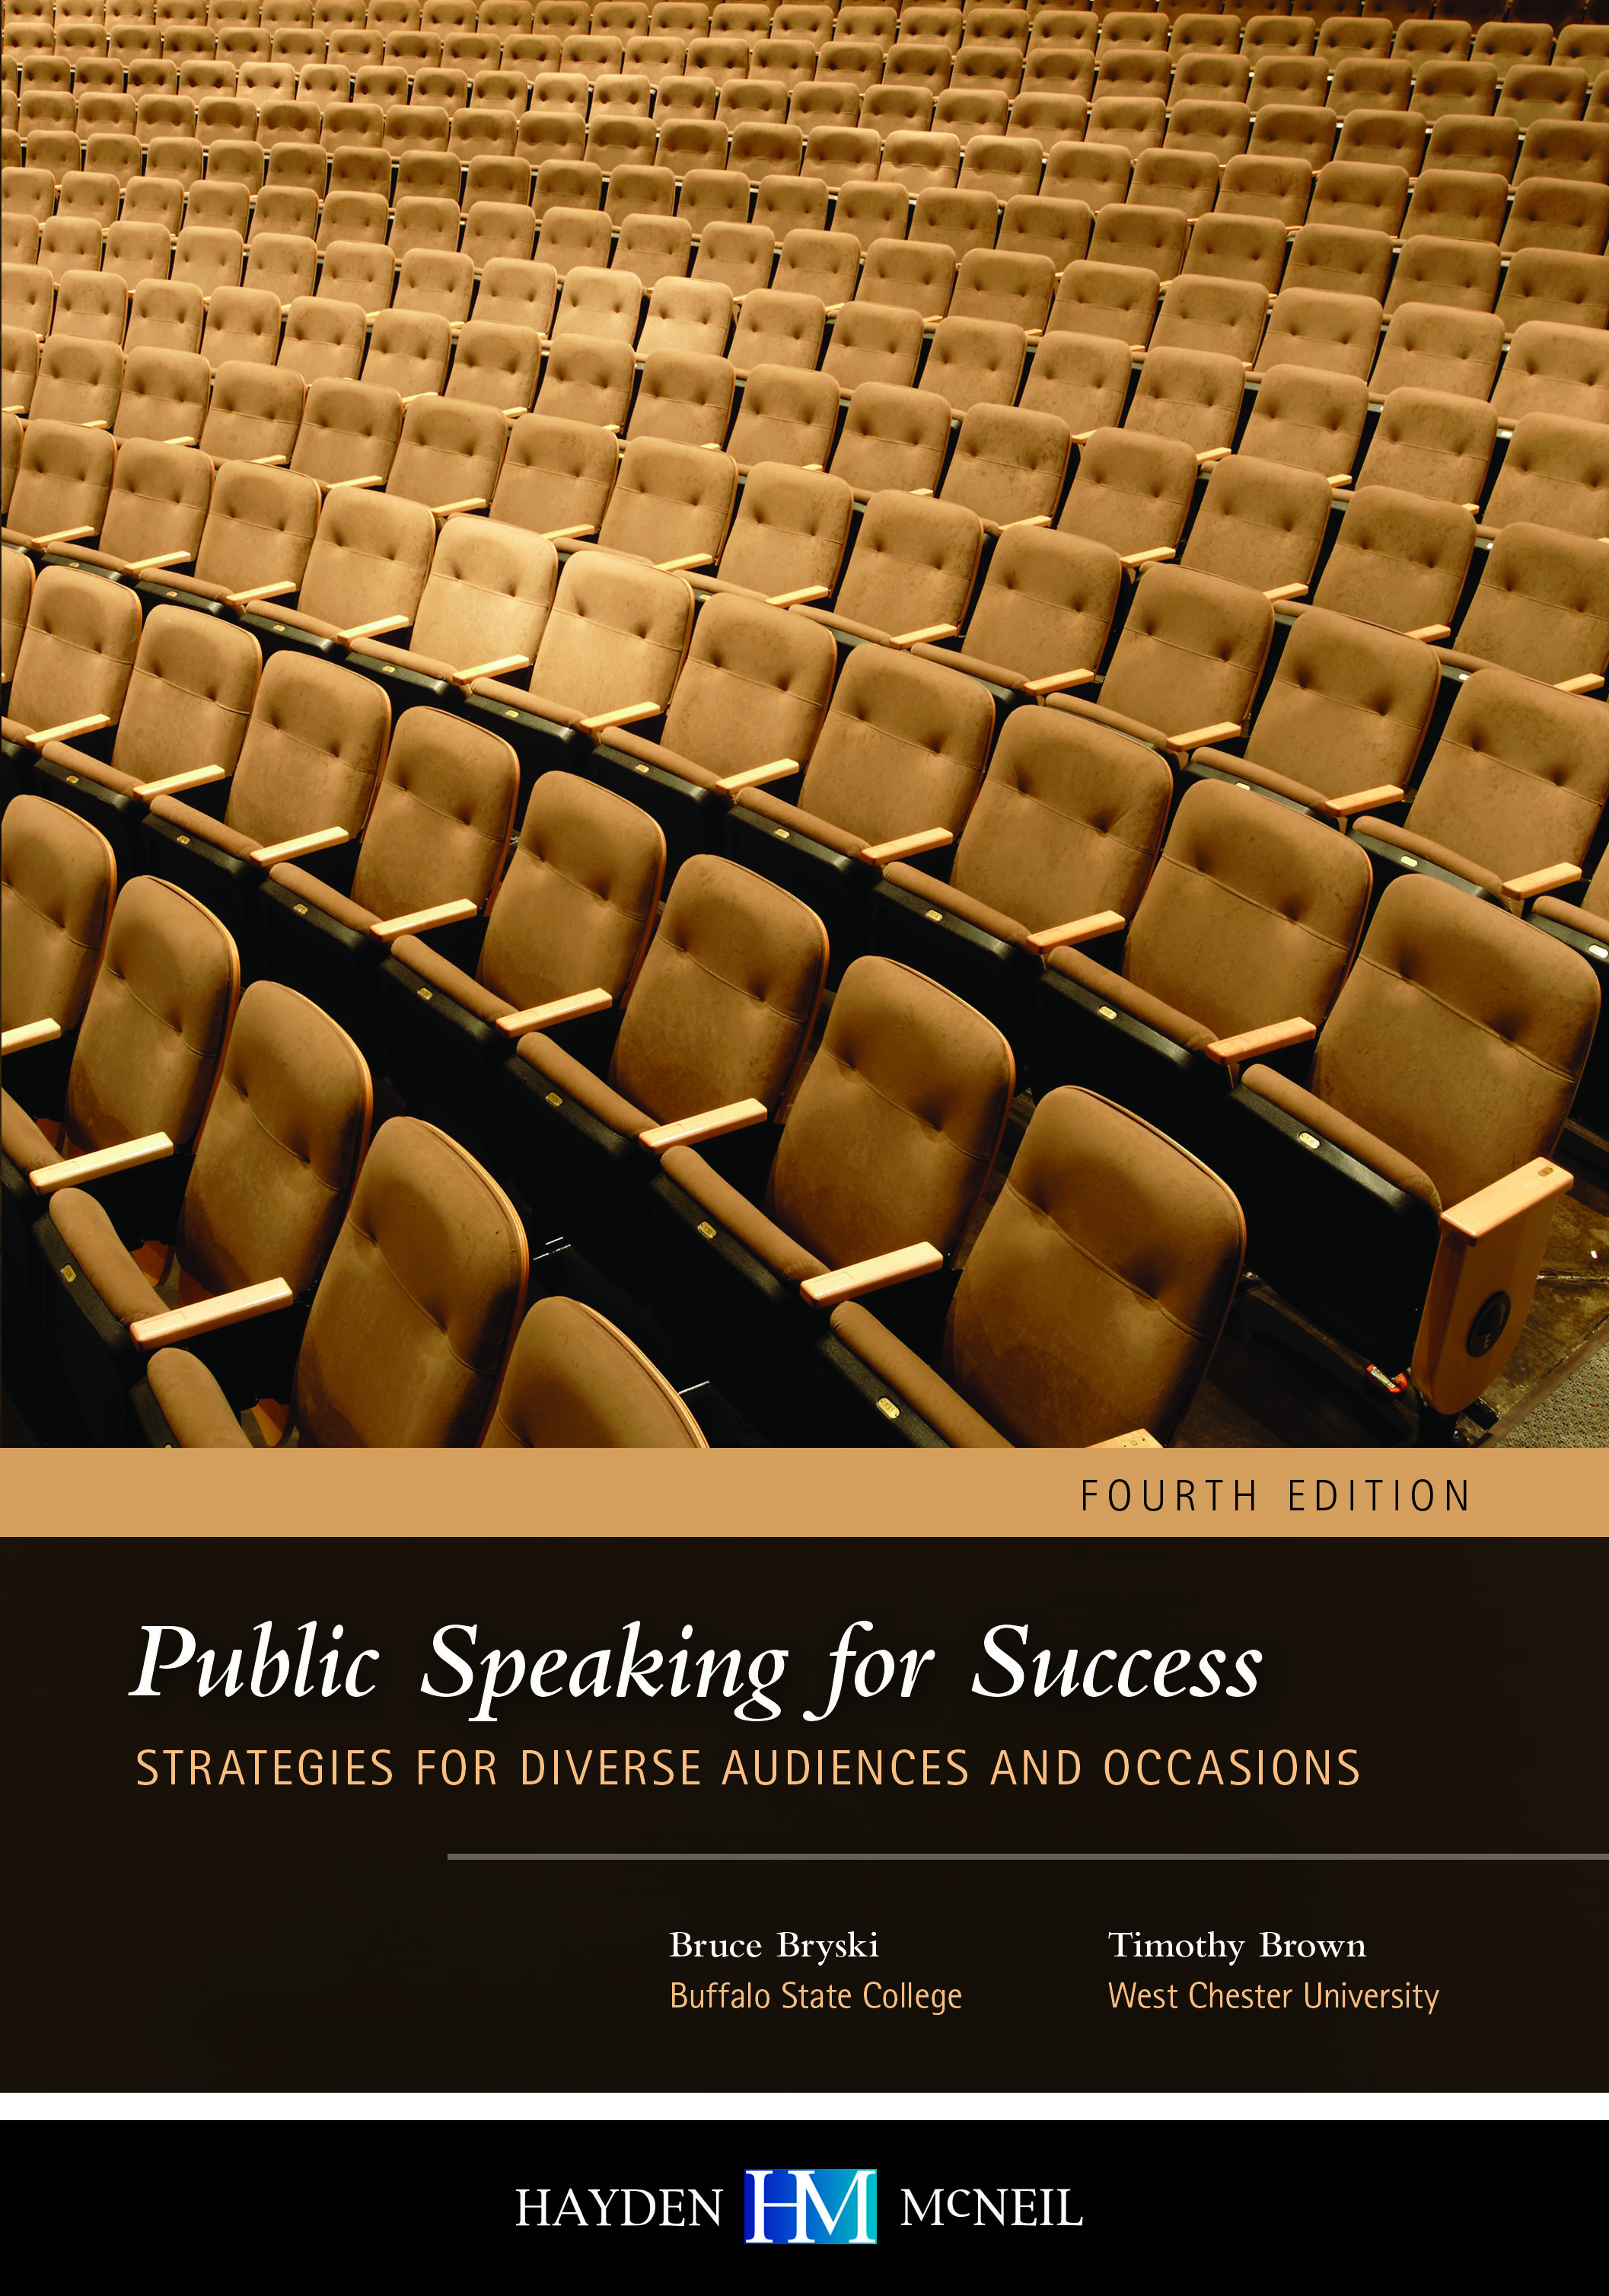 Pocket guide to public speaking 3rd ebook array bedford st martin u0027s communication speech communication rh macmillanlearning fandeluxe Image collections